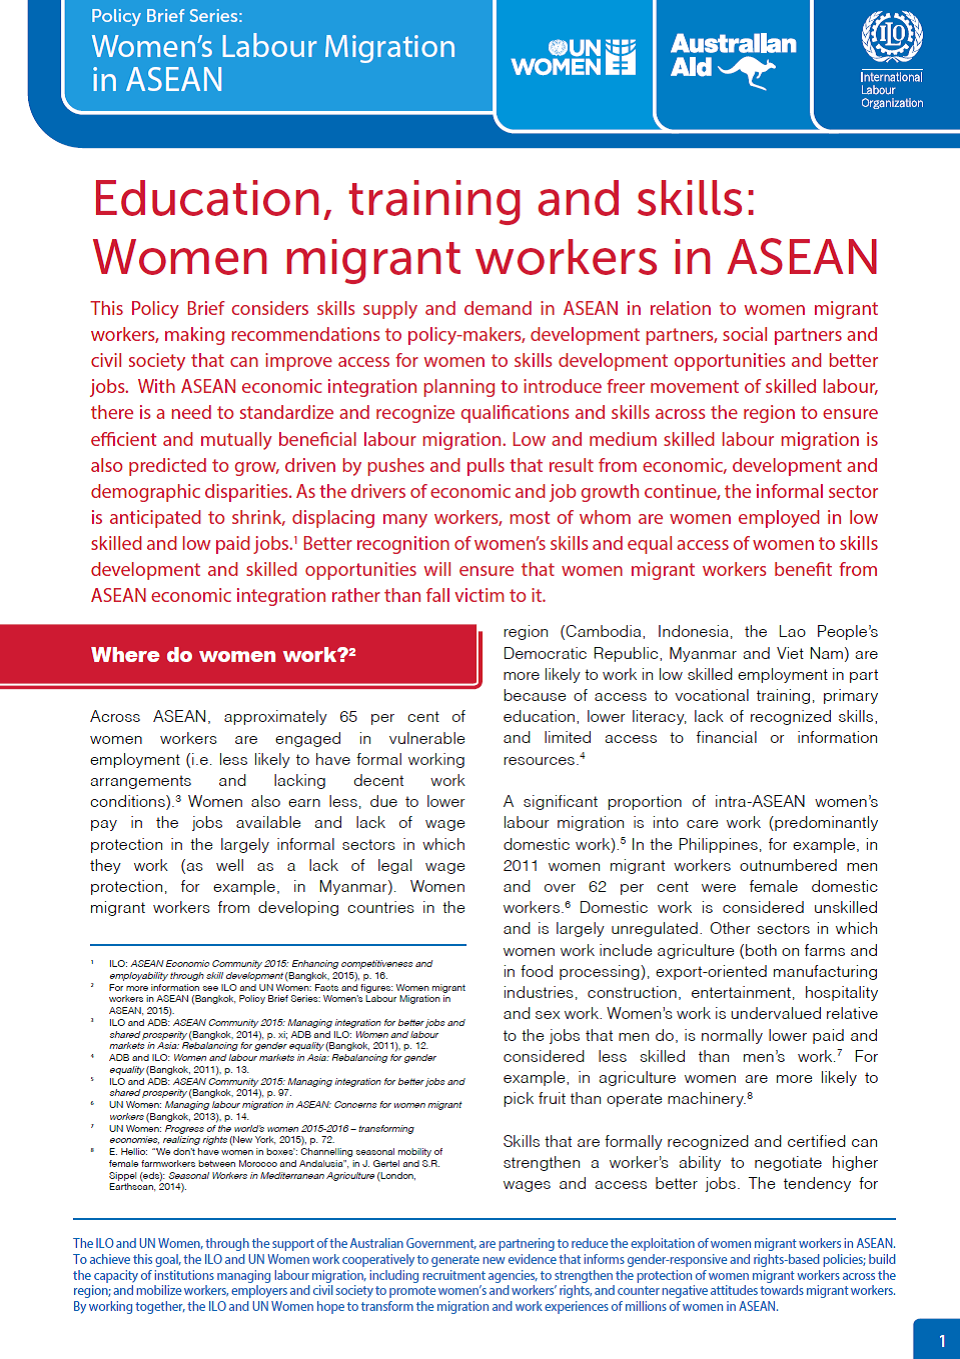 Education, training and skills: Women migrant workers in ASEAN